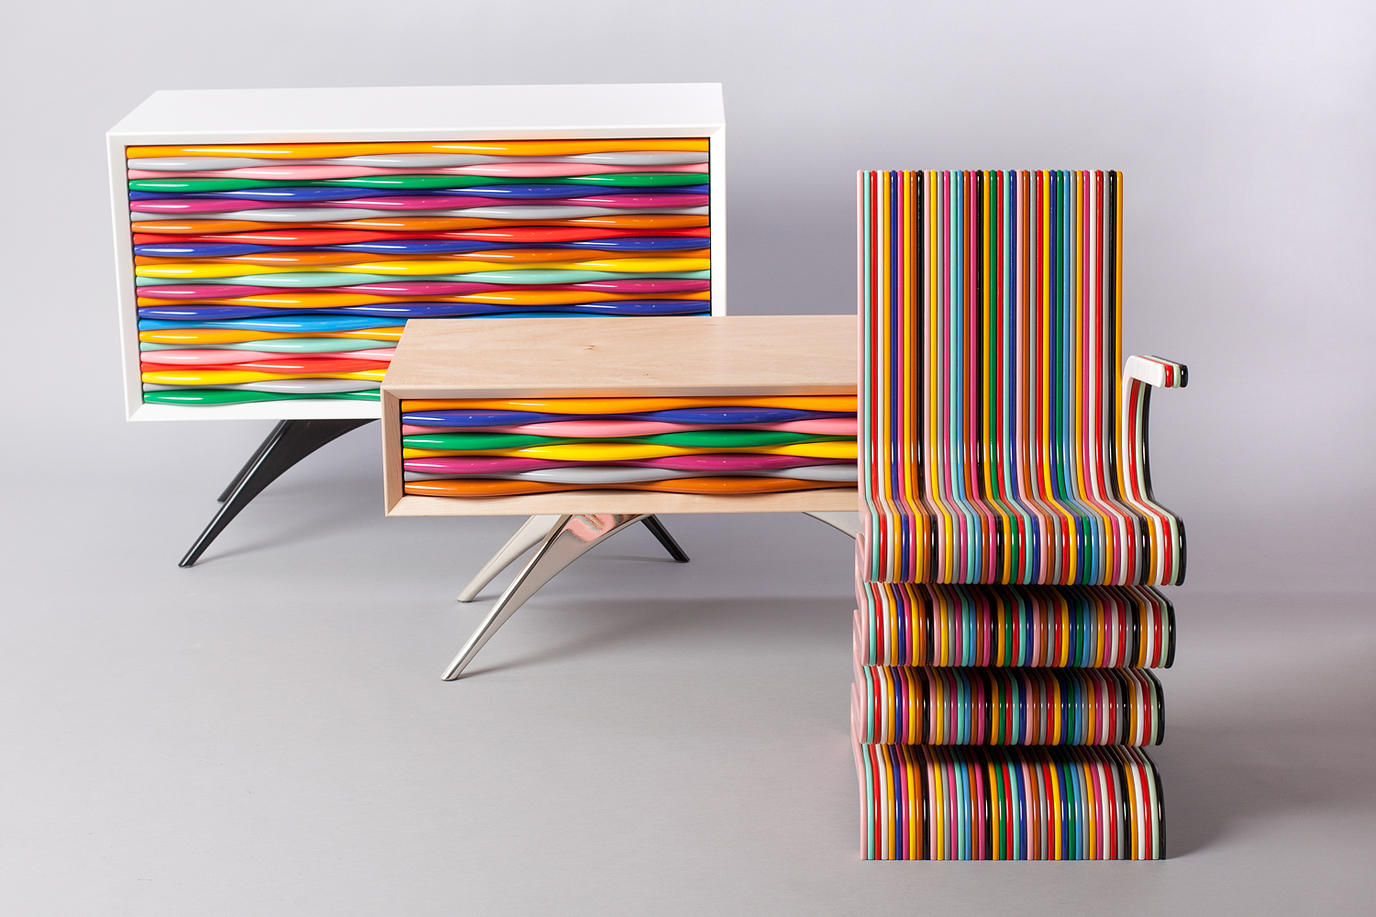 Design pop mobili multicolor di anthony hartley for Design di mobili commerciali